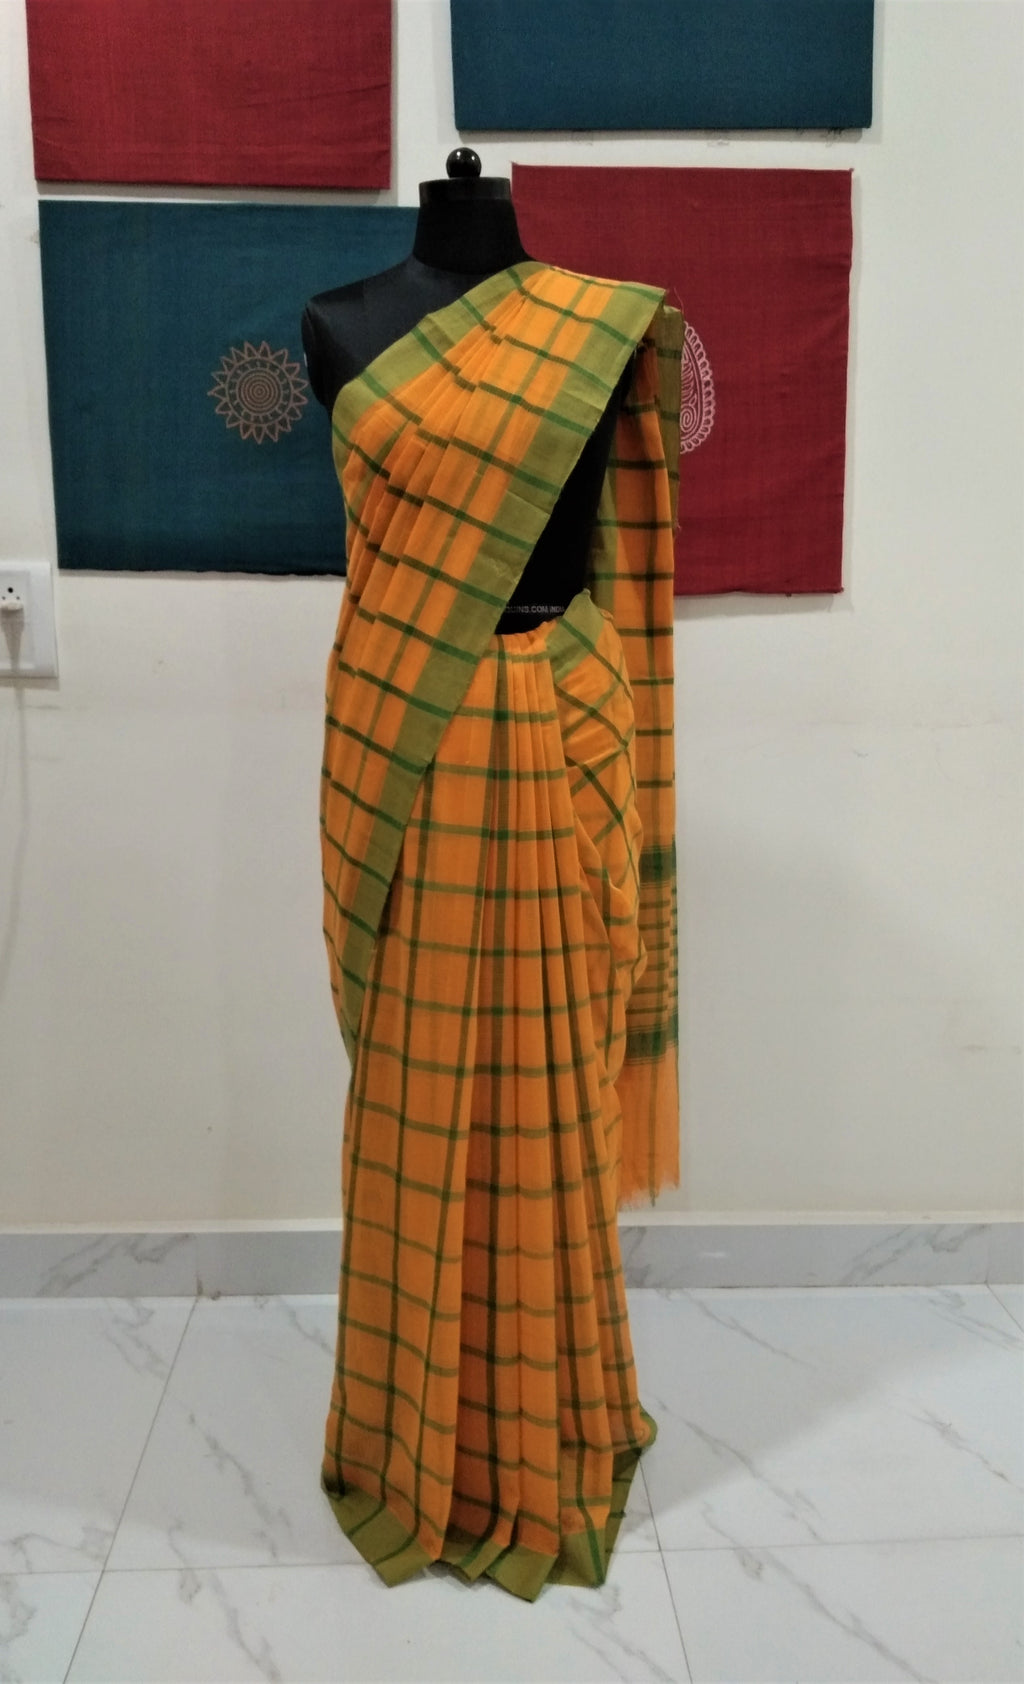 Bobbili Cotton Saree in Checks - Mango Yellow & Green